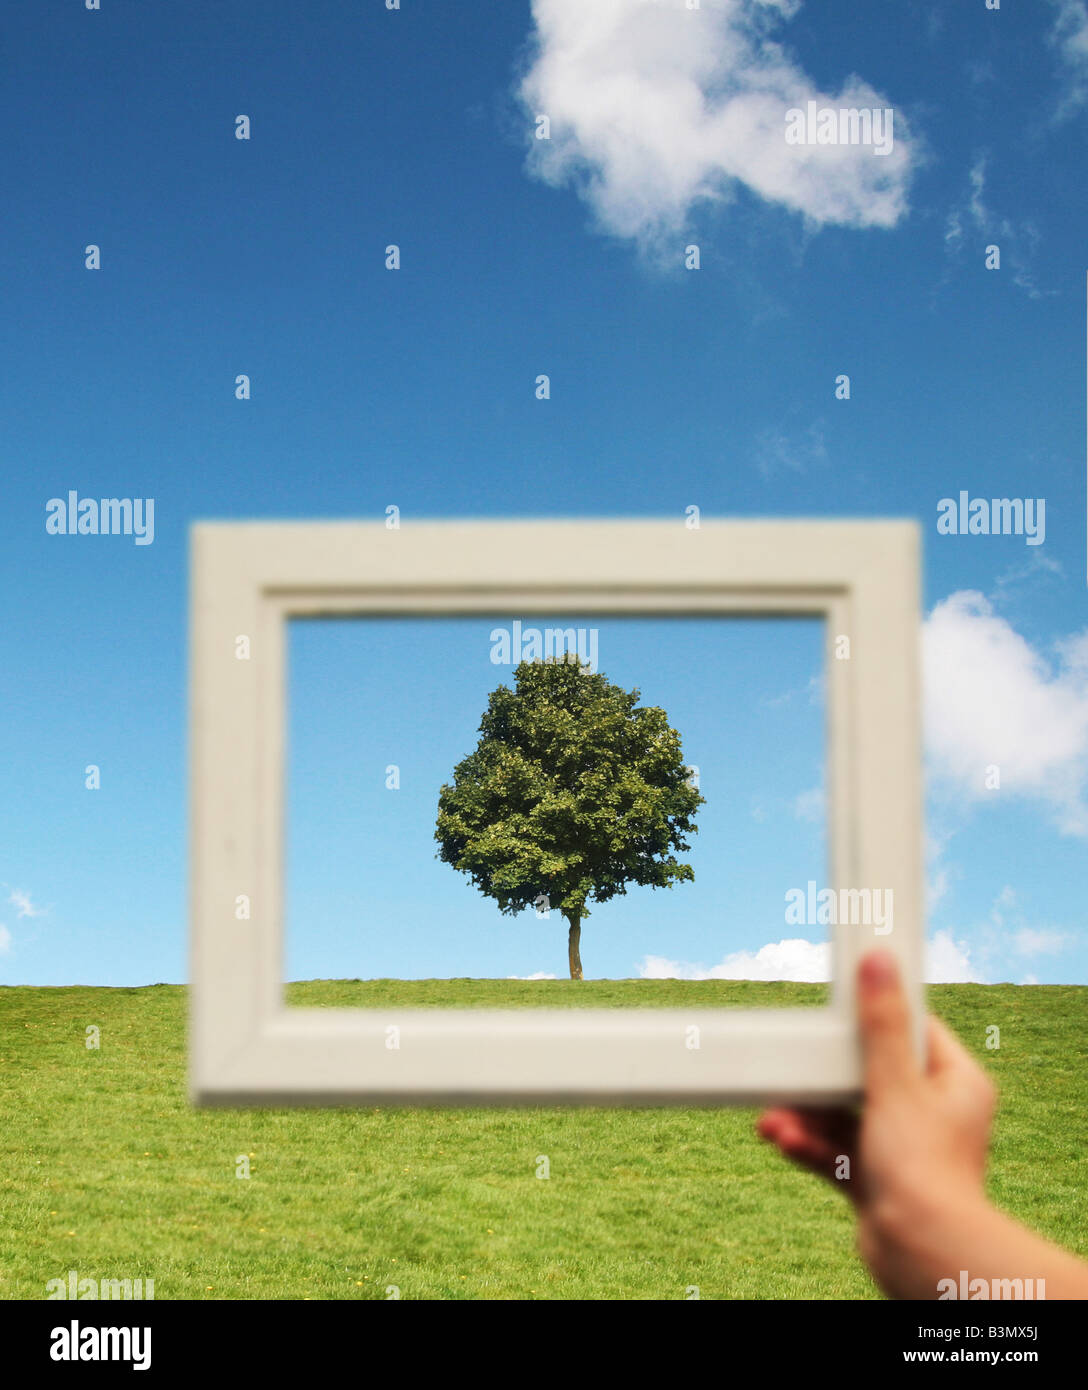 girl holding a picture frame in front of a tree - Stock Image